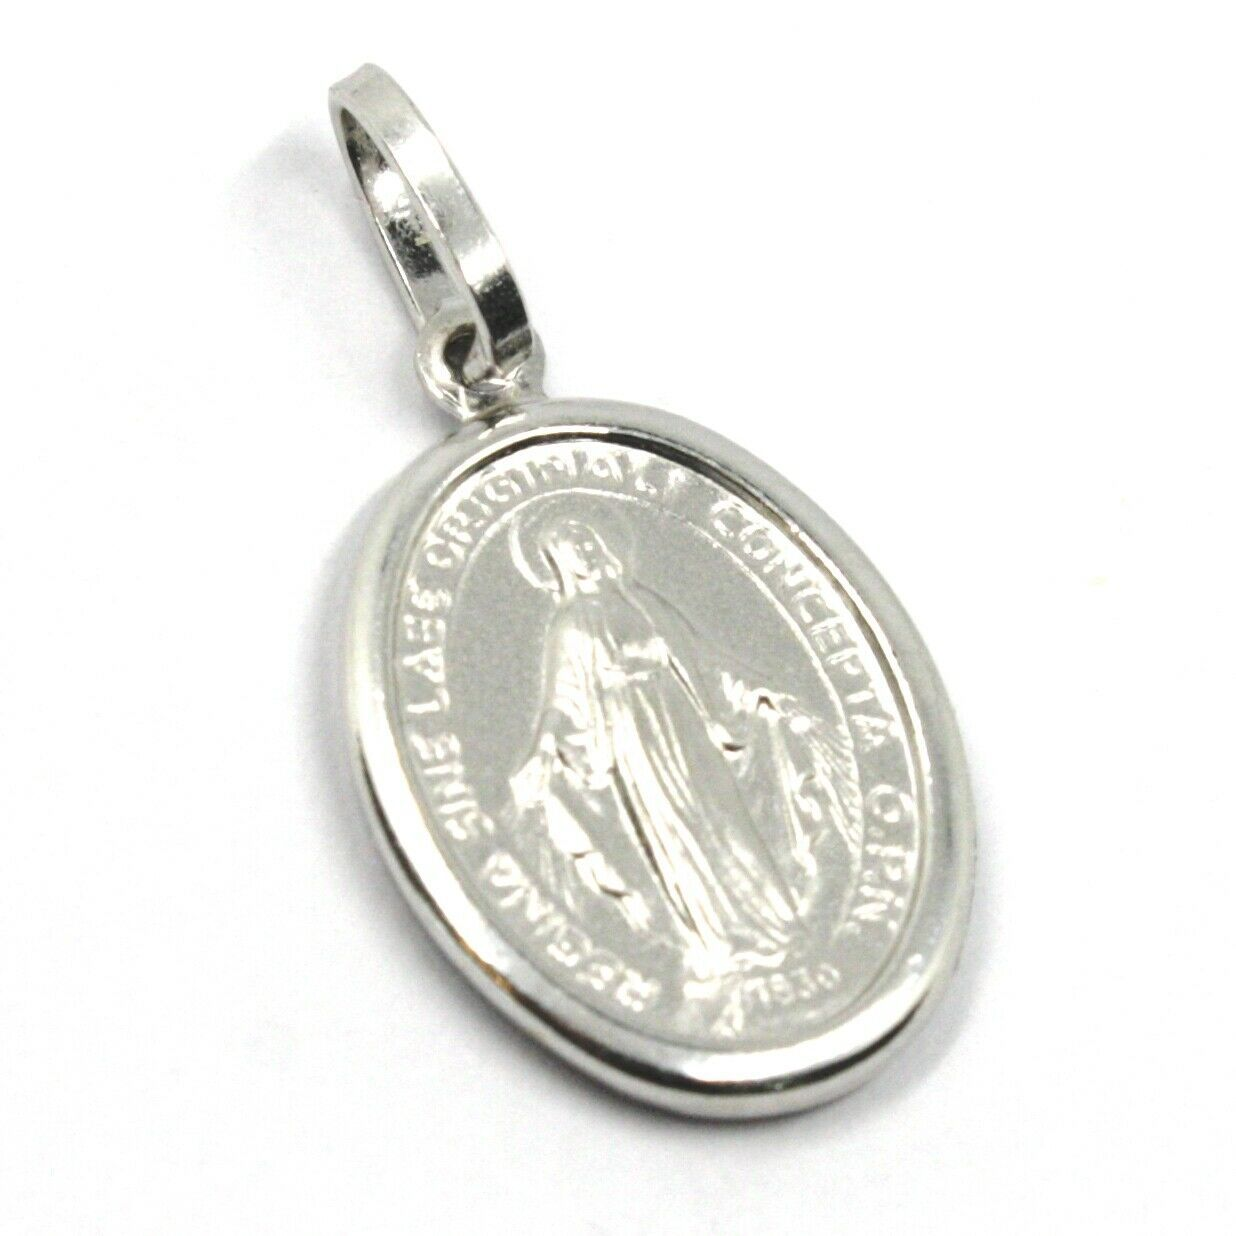 18K WHITE GOLD MIRACULOUS MEDAL VIRGIN MARY MADONNA, 1.6 CM, 0.63 INCHES